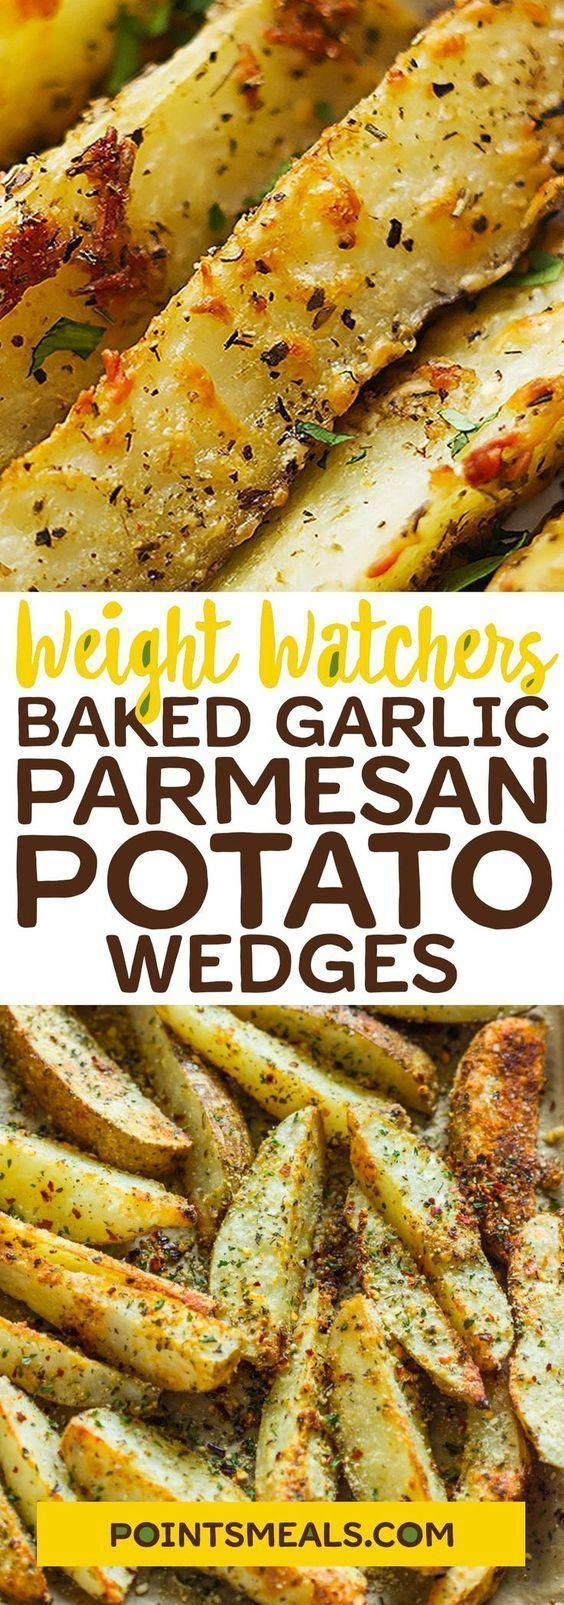 Weight Watchers Recipes with SmartPoints - For Dinner, Lunch or Dessert